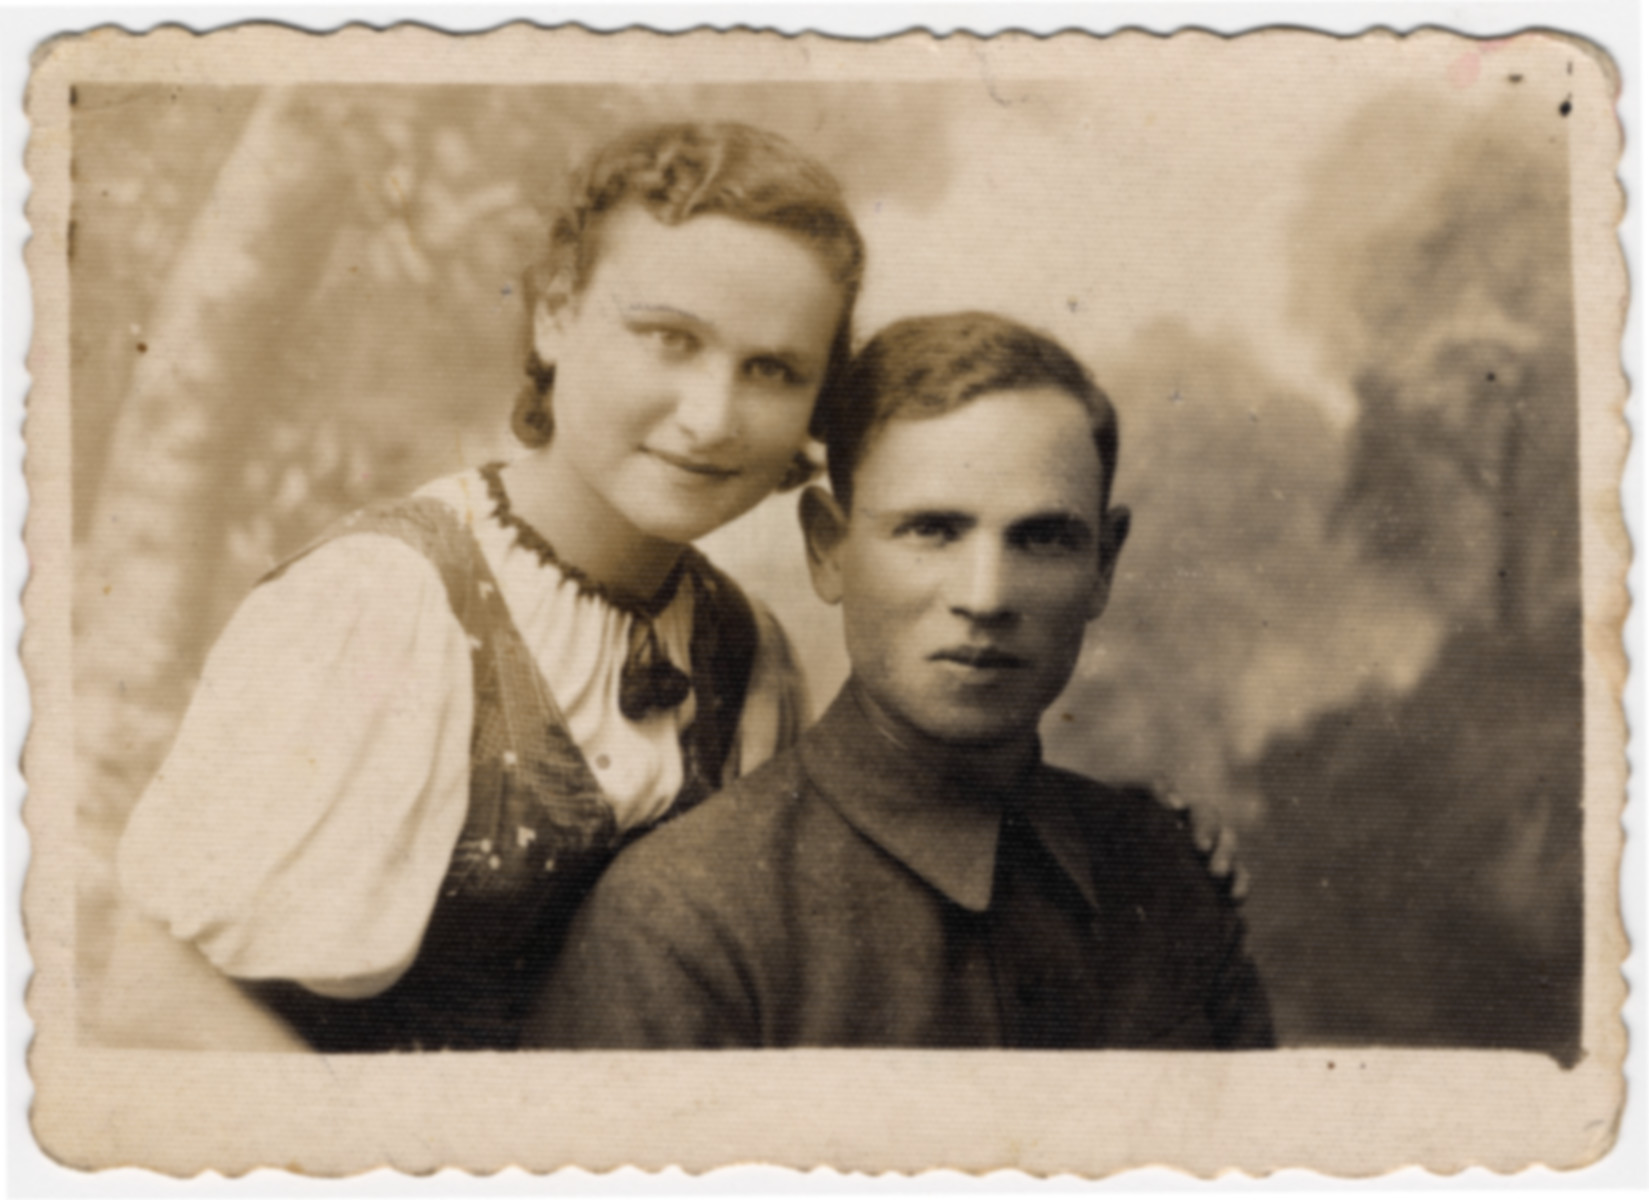 Studio portrait of Zus Bielski and his sister Estell (later Hersthal).  Estell was the youngest of the Bielski siblings.  She survived the war in the Soviet Union.